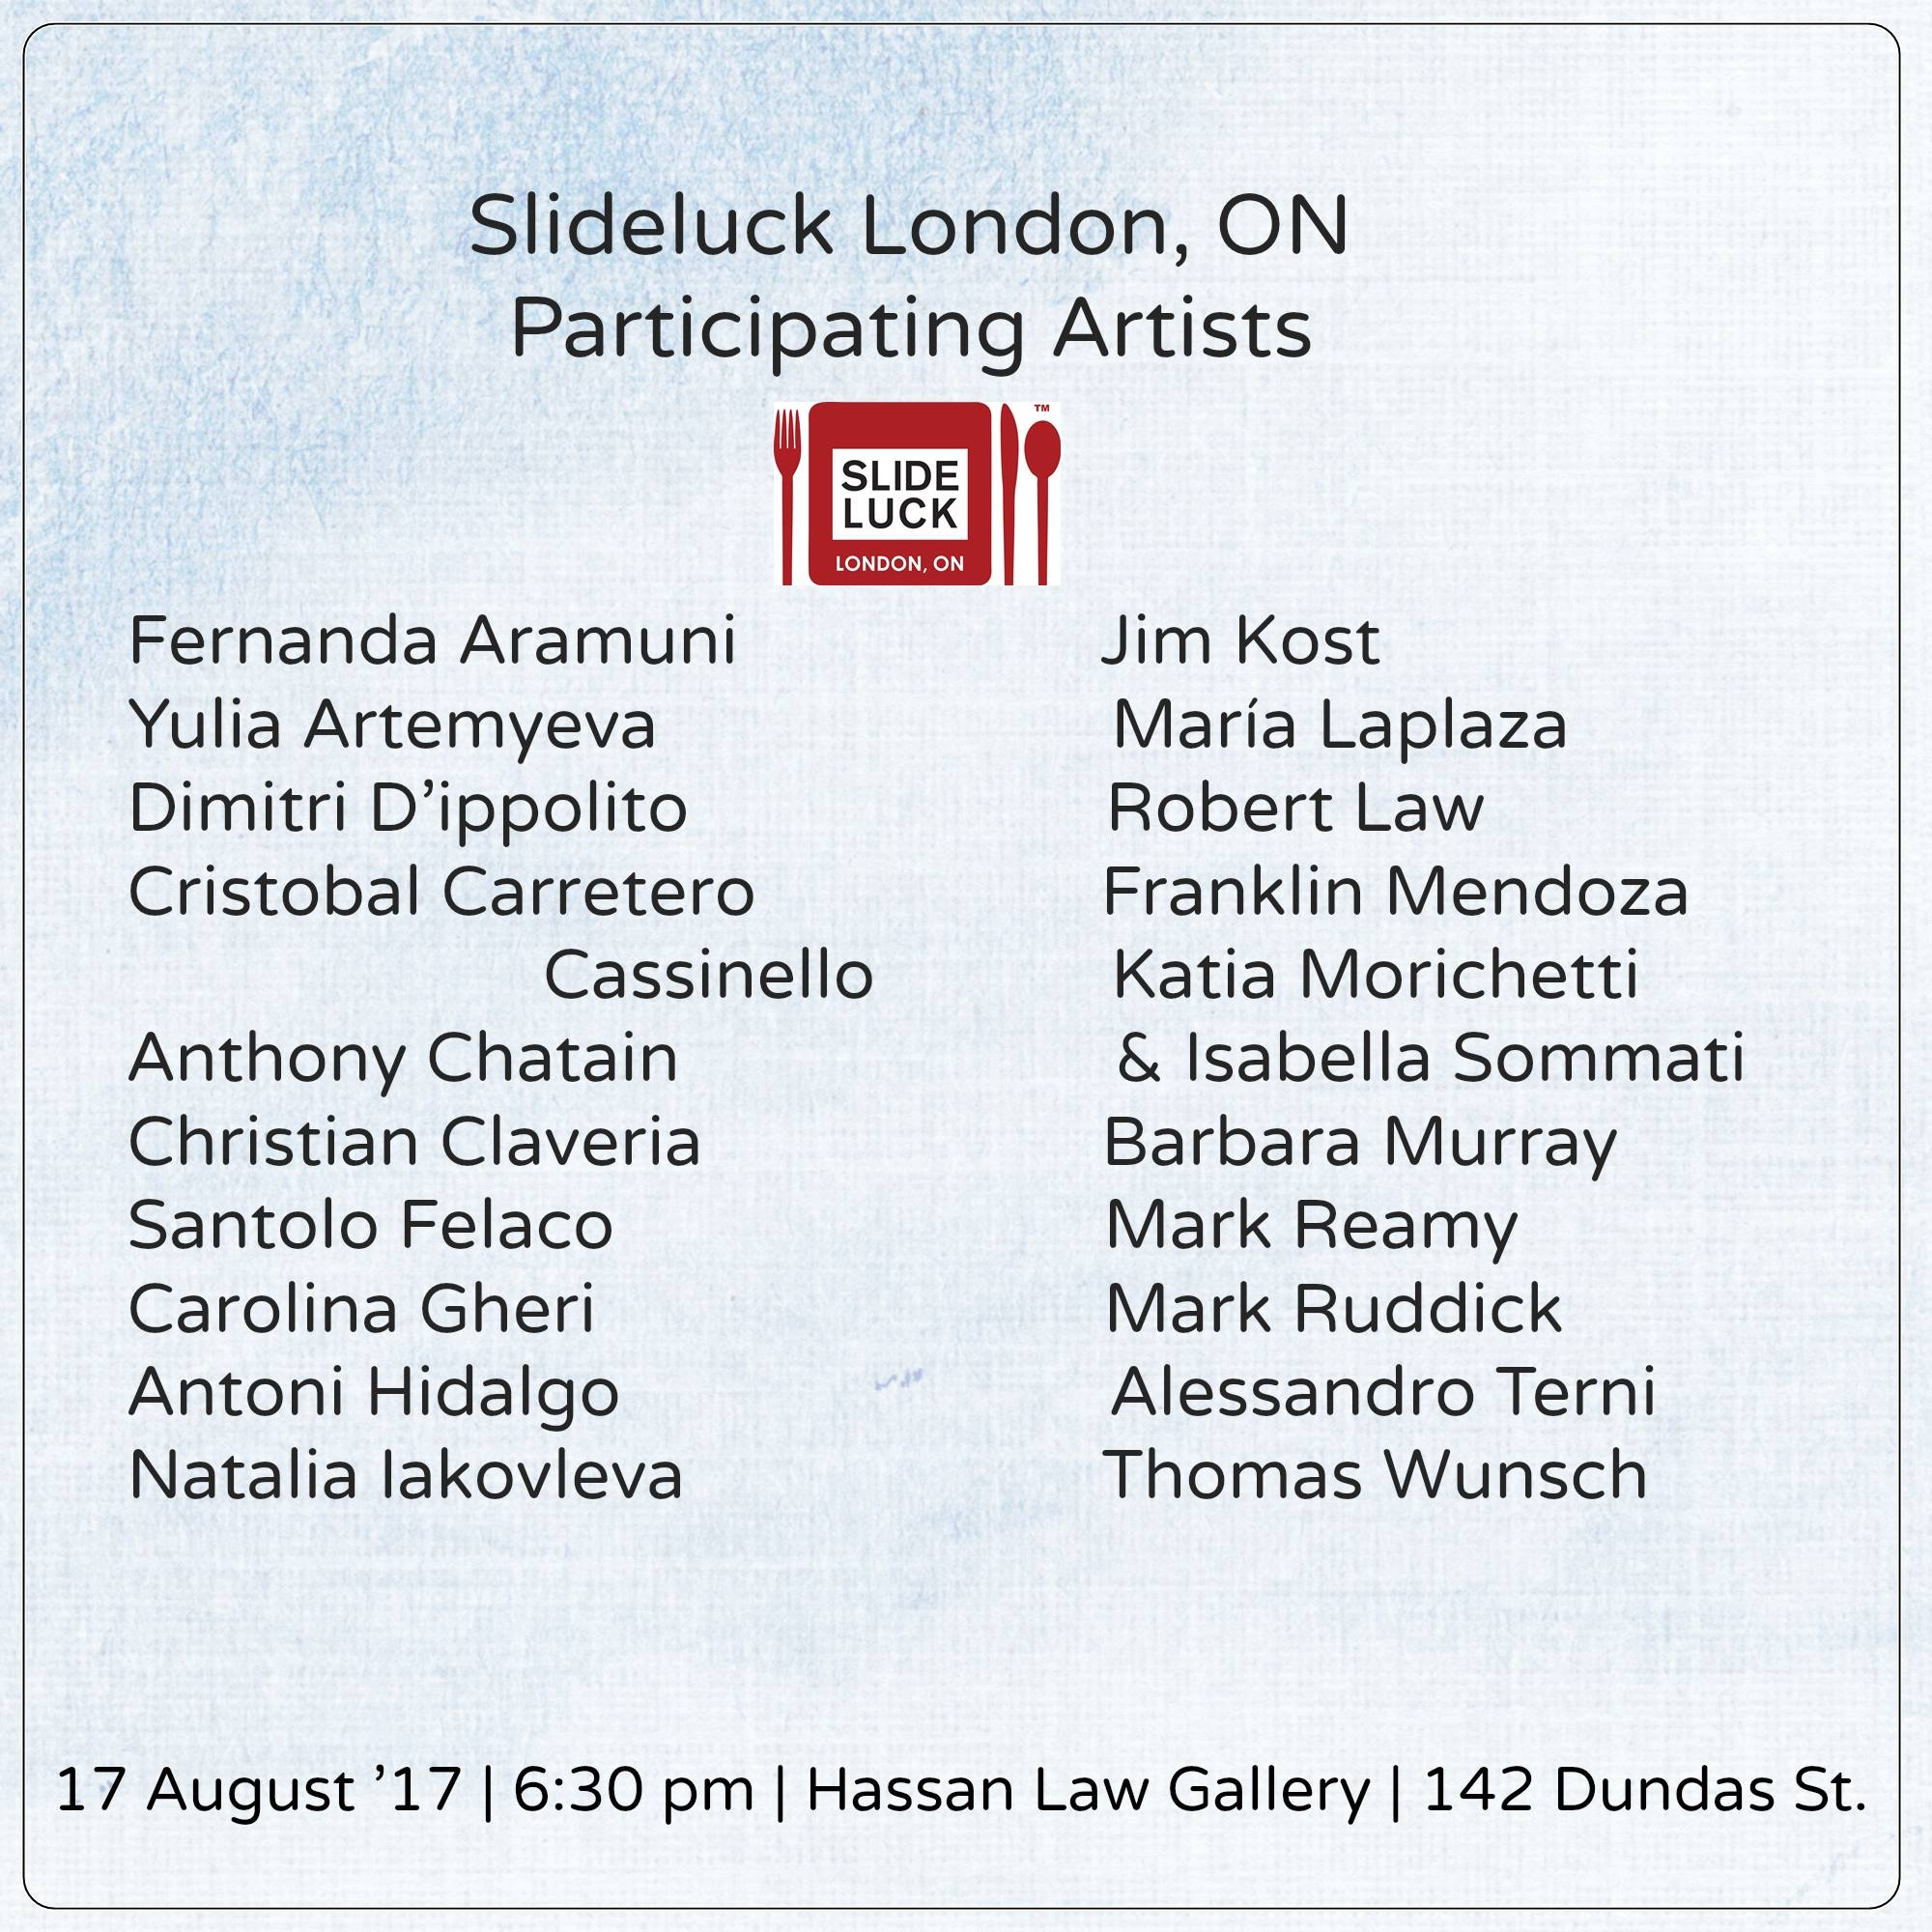 Slideluck, London ON announces its' participating artists.